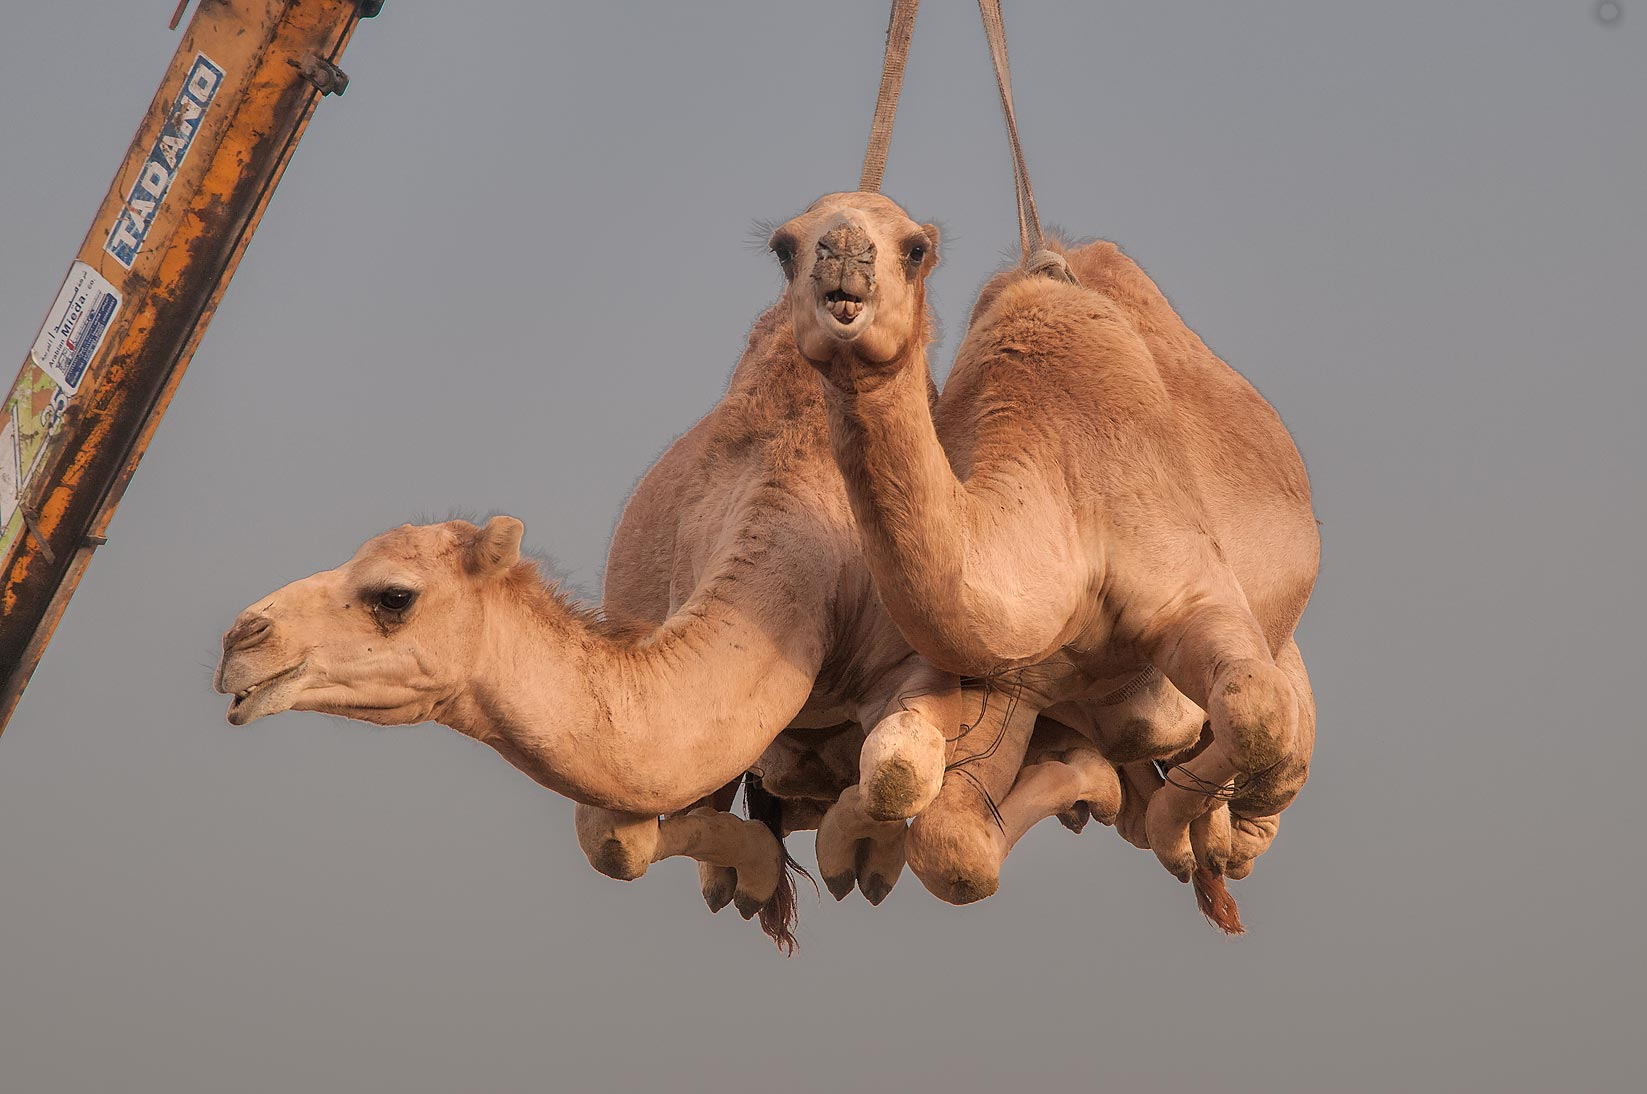 Camels suspended from crane in Camel Market, Wholesale Markets area. Doha, Qatar